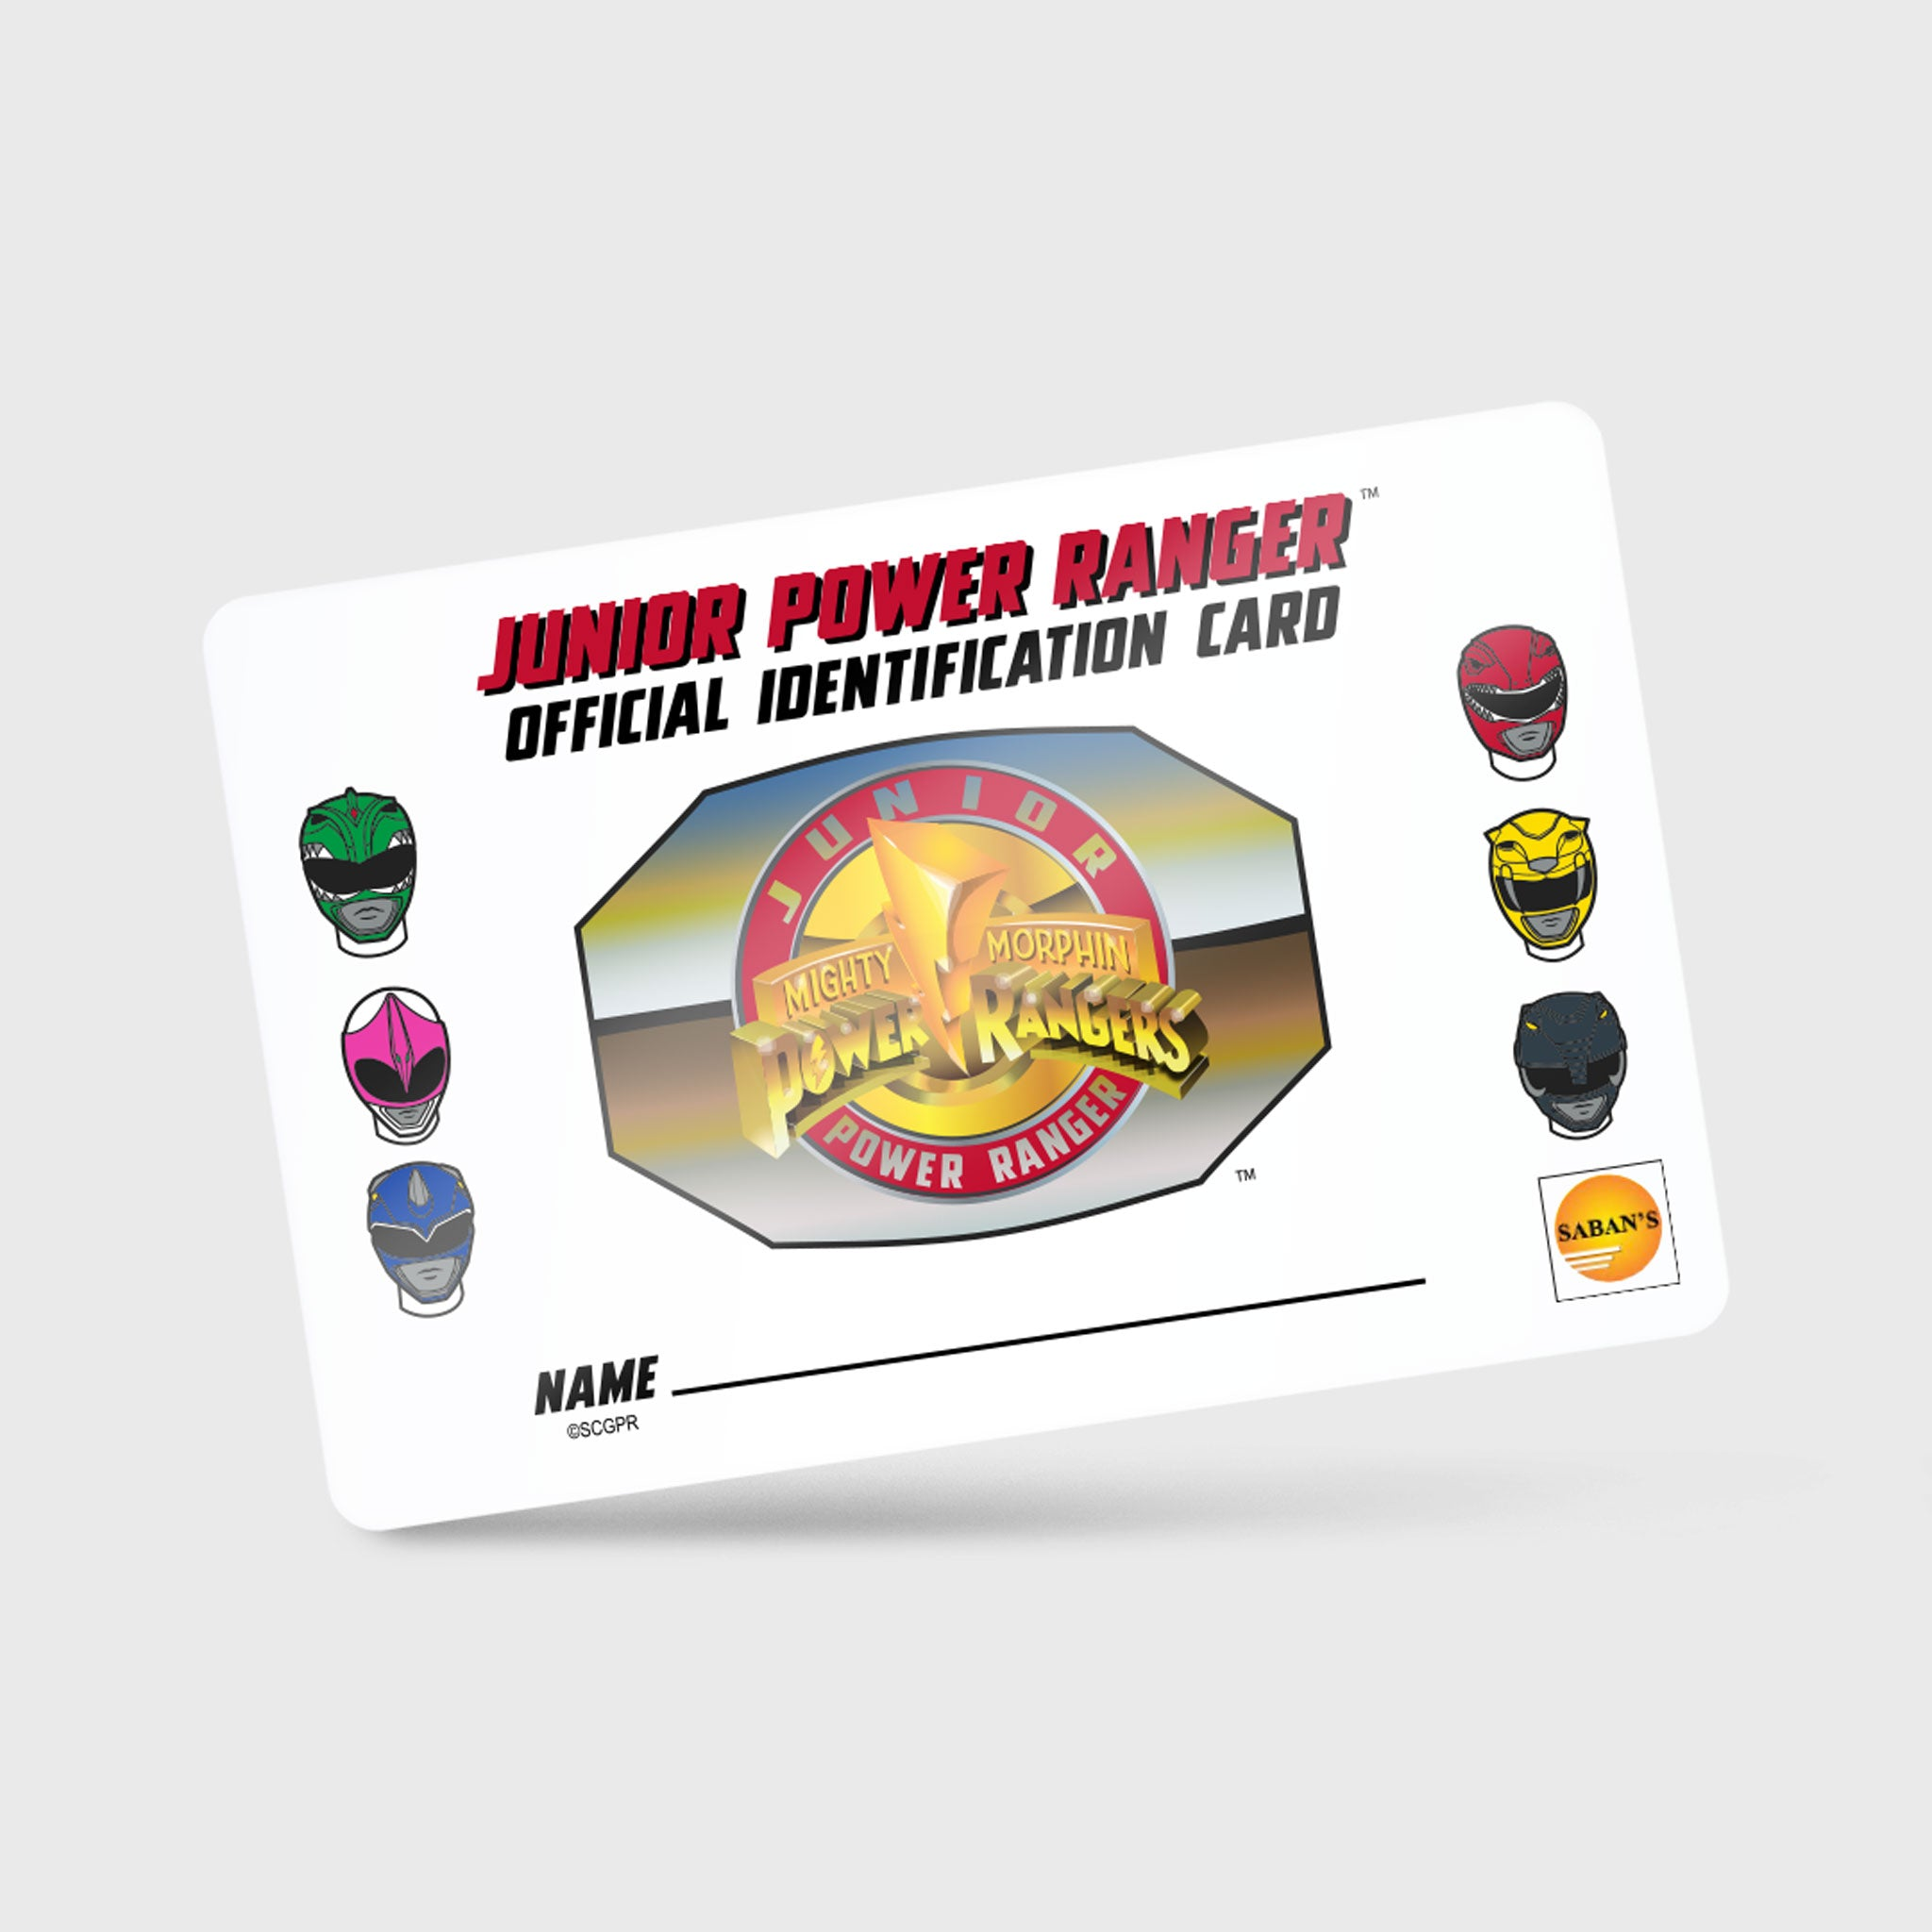 power rangers mighty morphin mmpr 90s kids green ranger black ranger blue ranger red ranger yellow ranger pink ranger exclusive gamestop retail box collectibles culturefly junior membership identification card